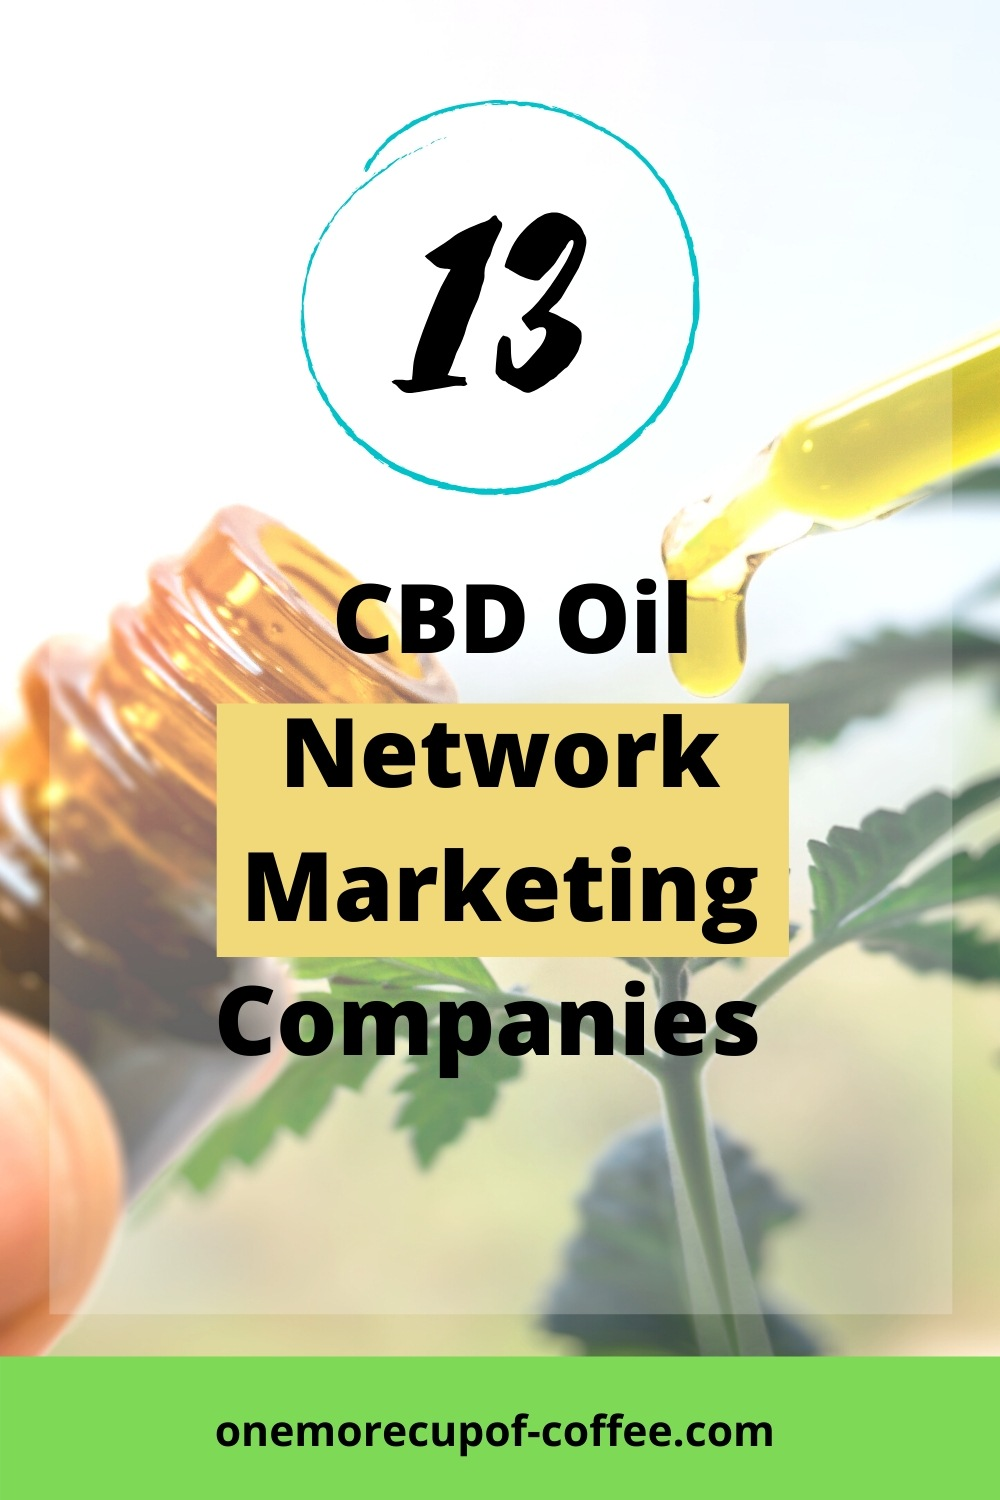 Pouring Oil to represent Network Marketing Companies